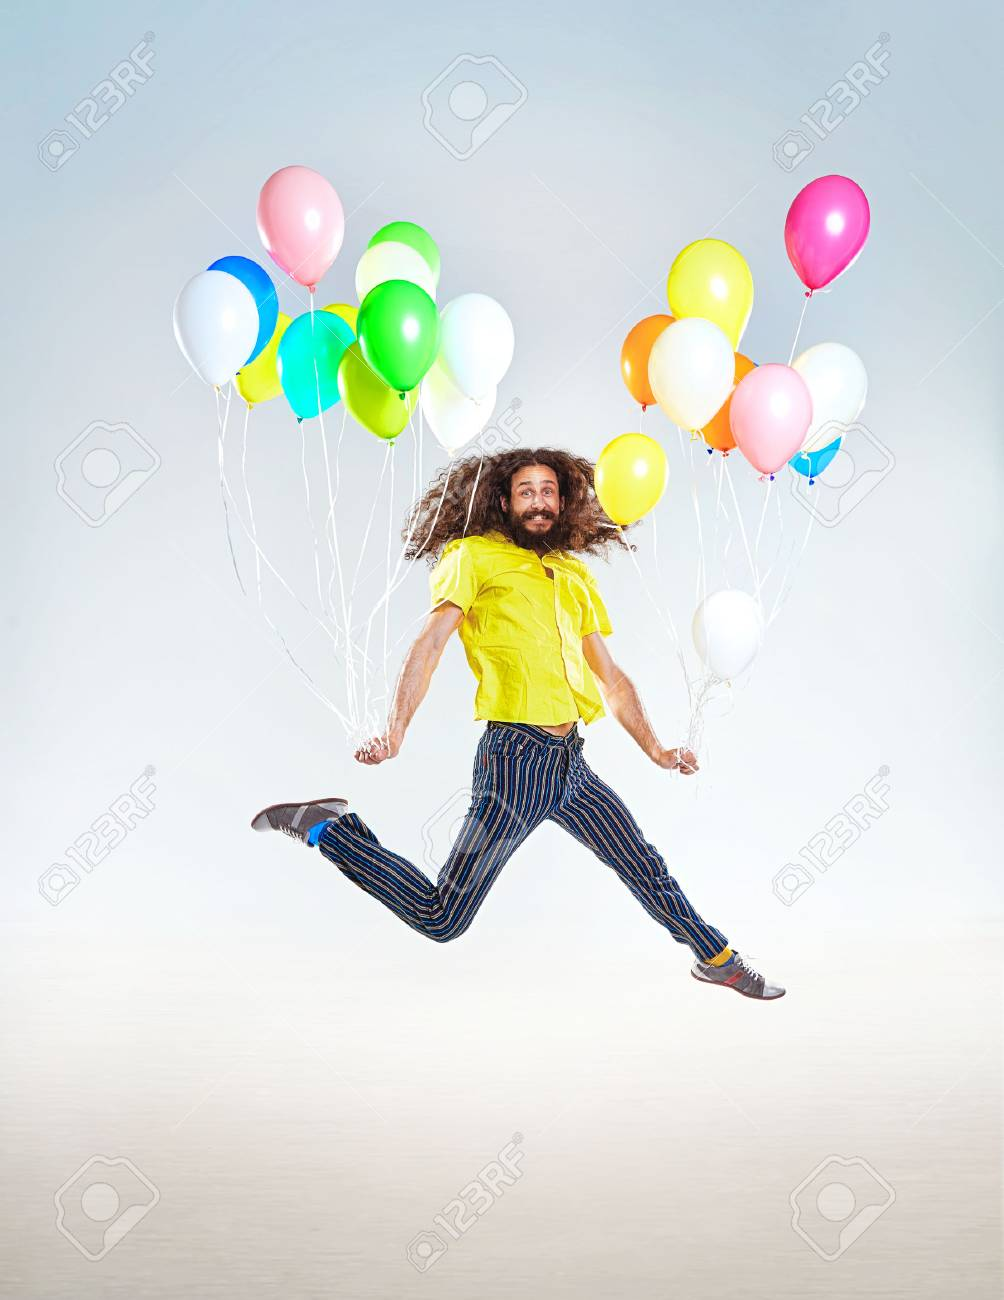 Conceptual portrait of a childish guy jumping with balloons - 85169983